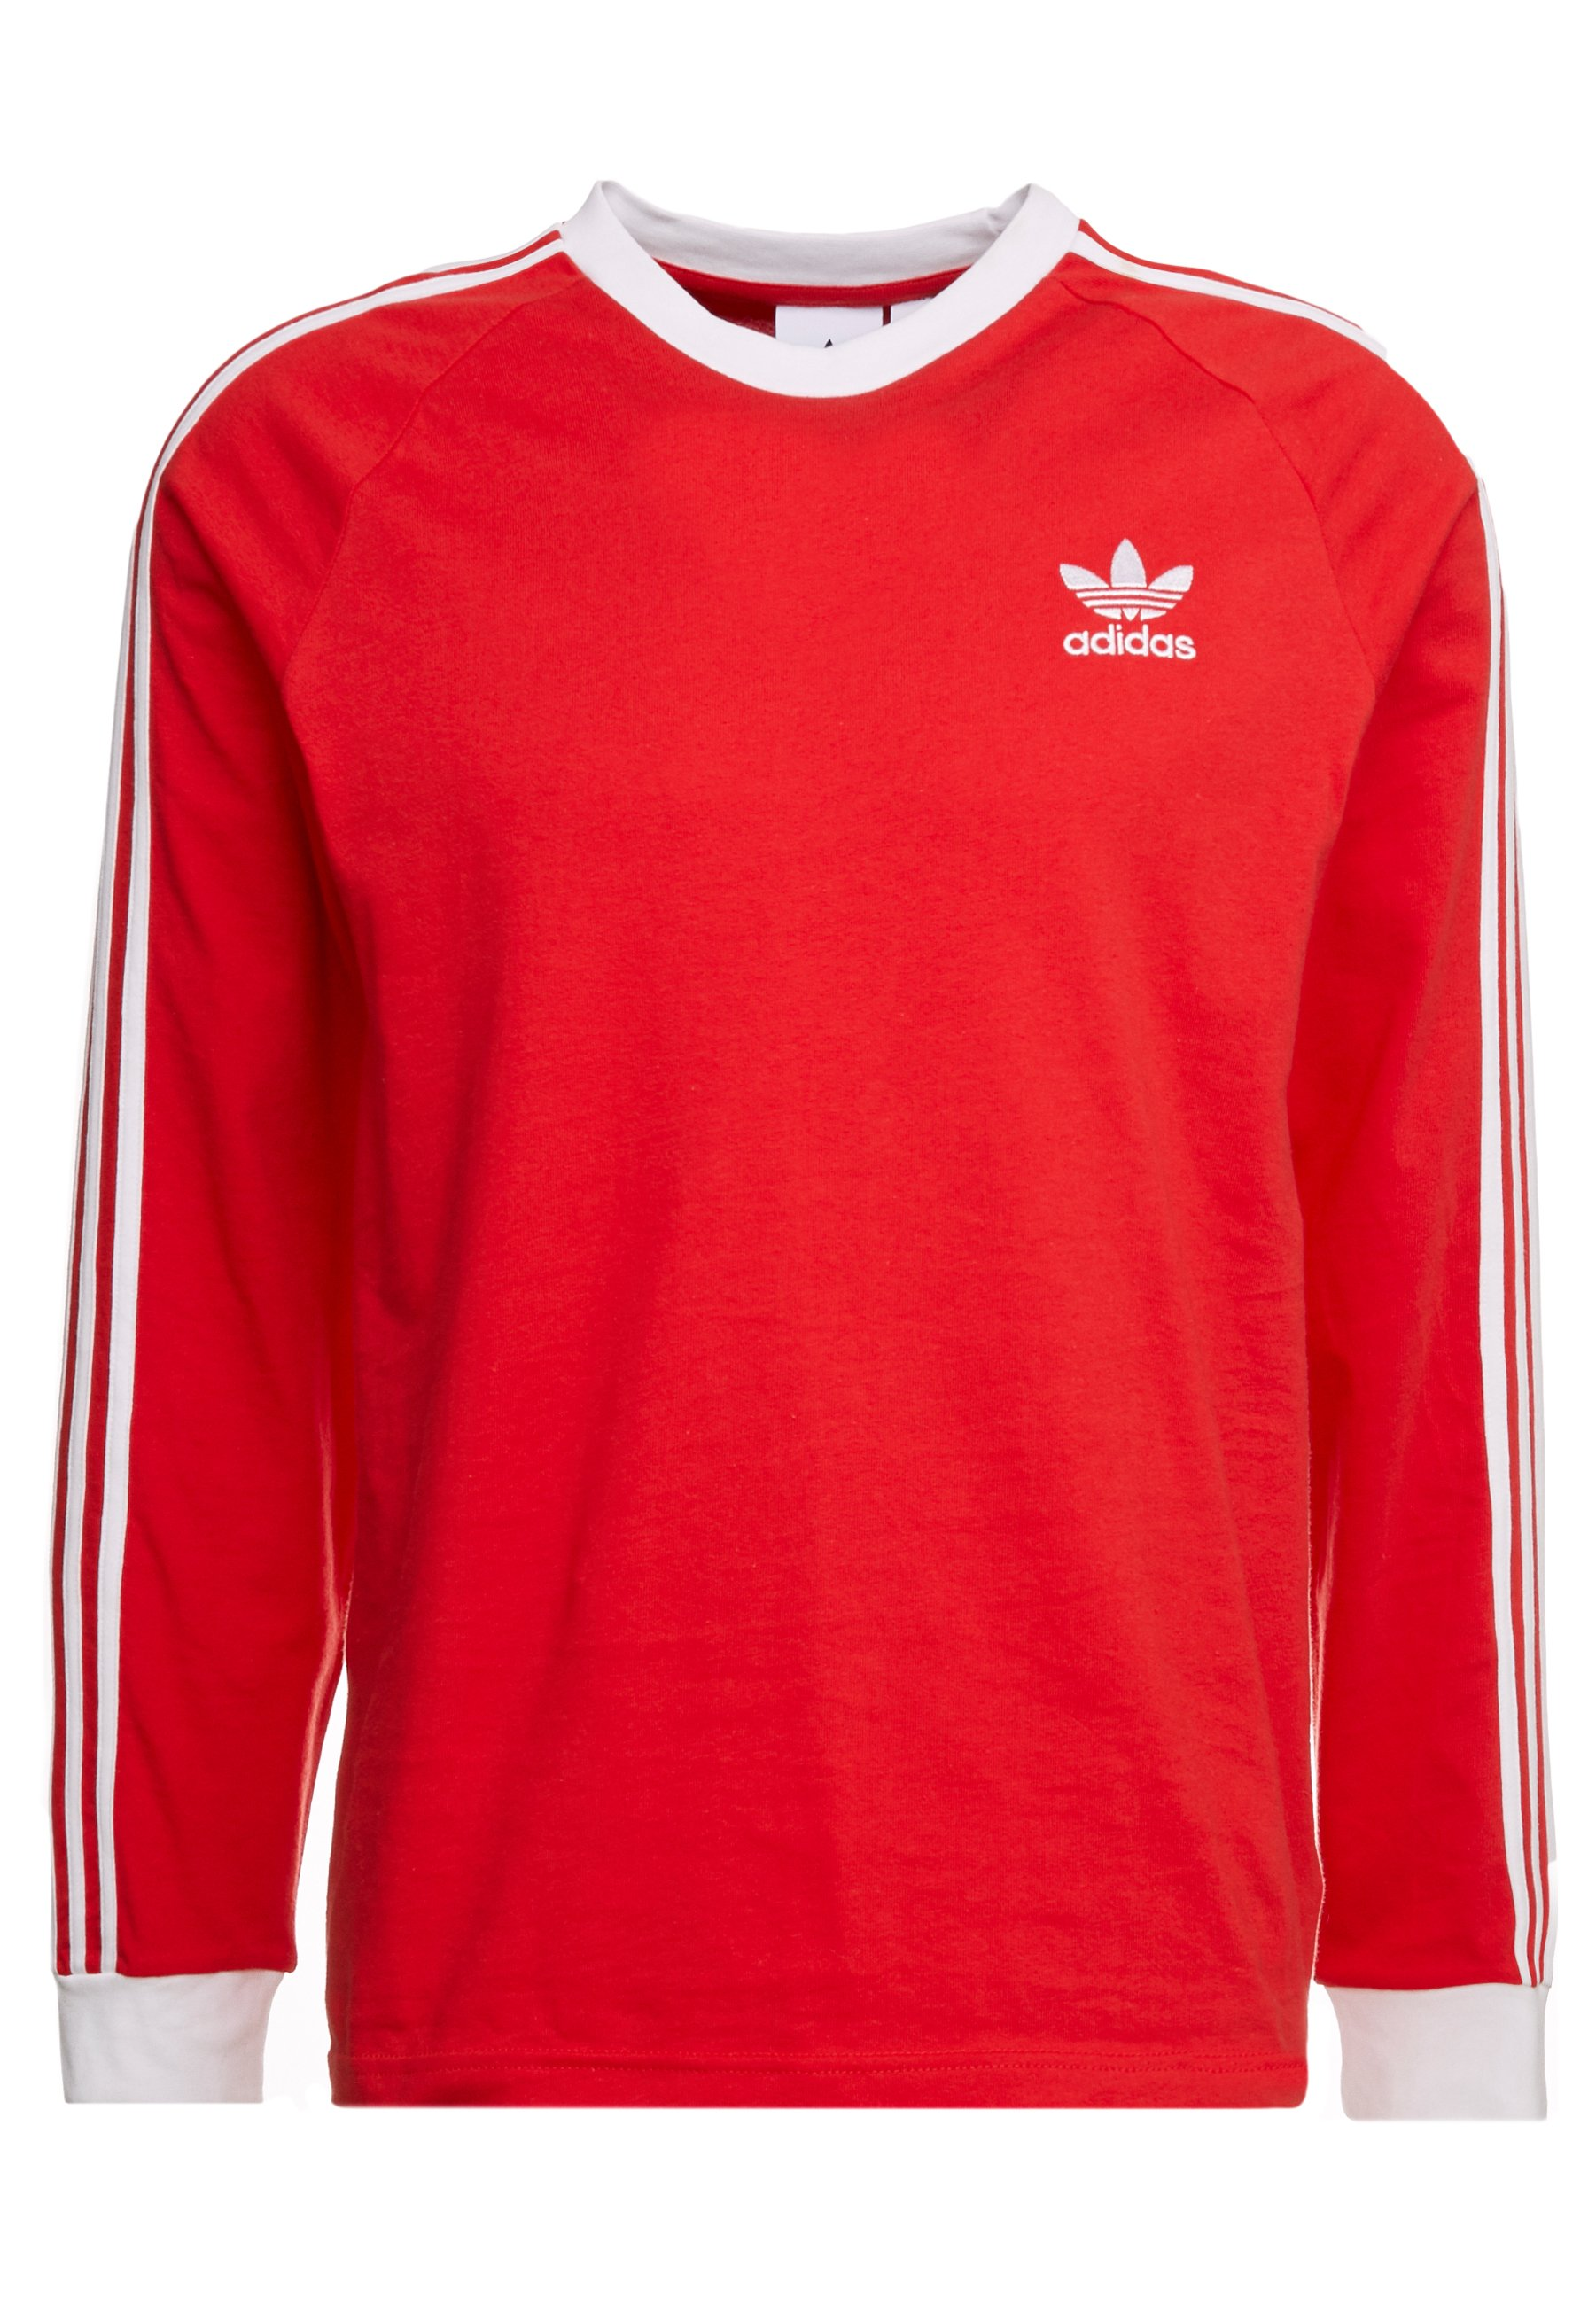 Adidas Originals 3-stripes - Long Sleeved Top Lush Red